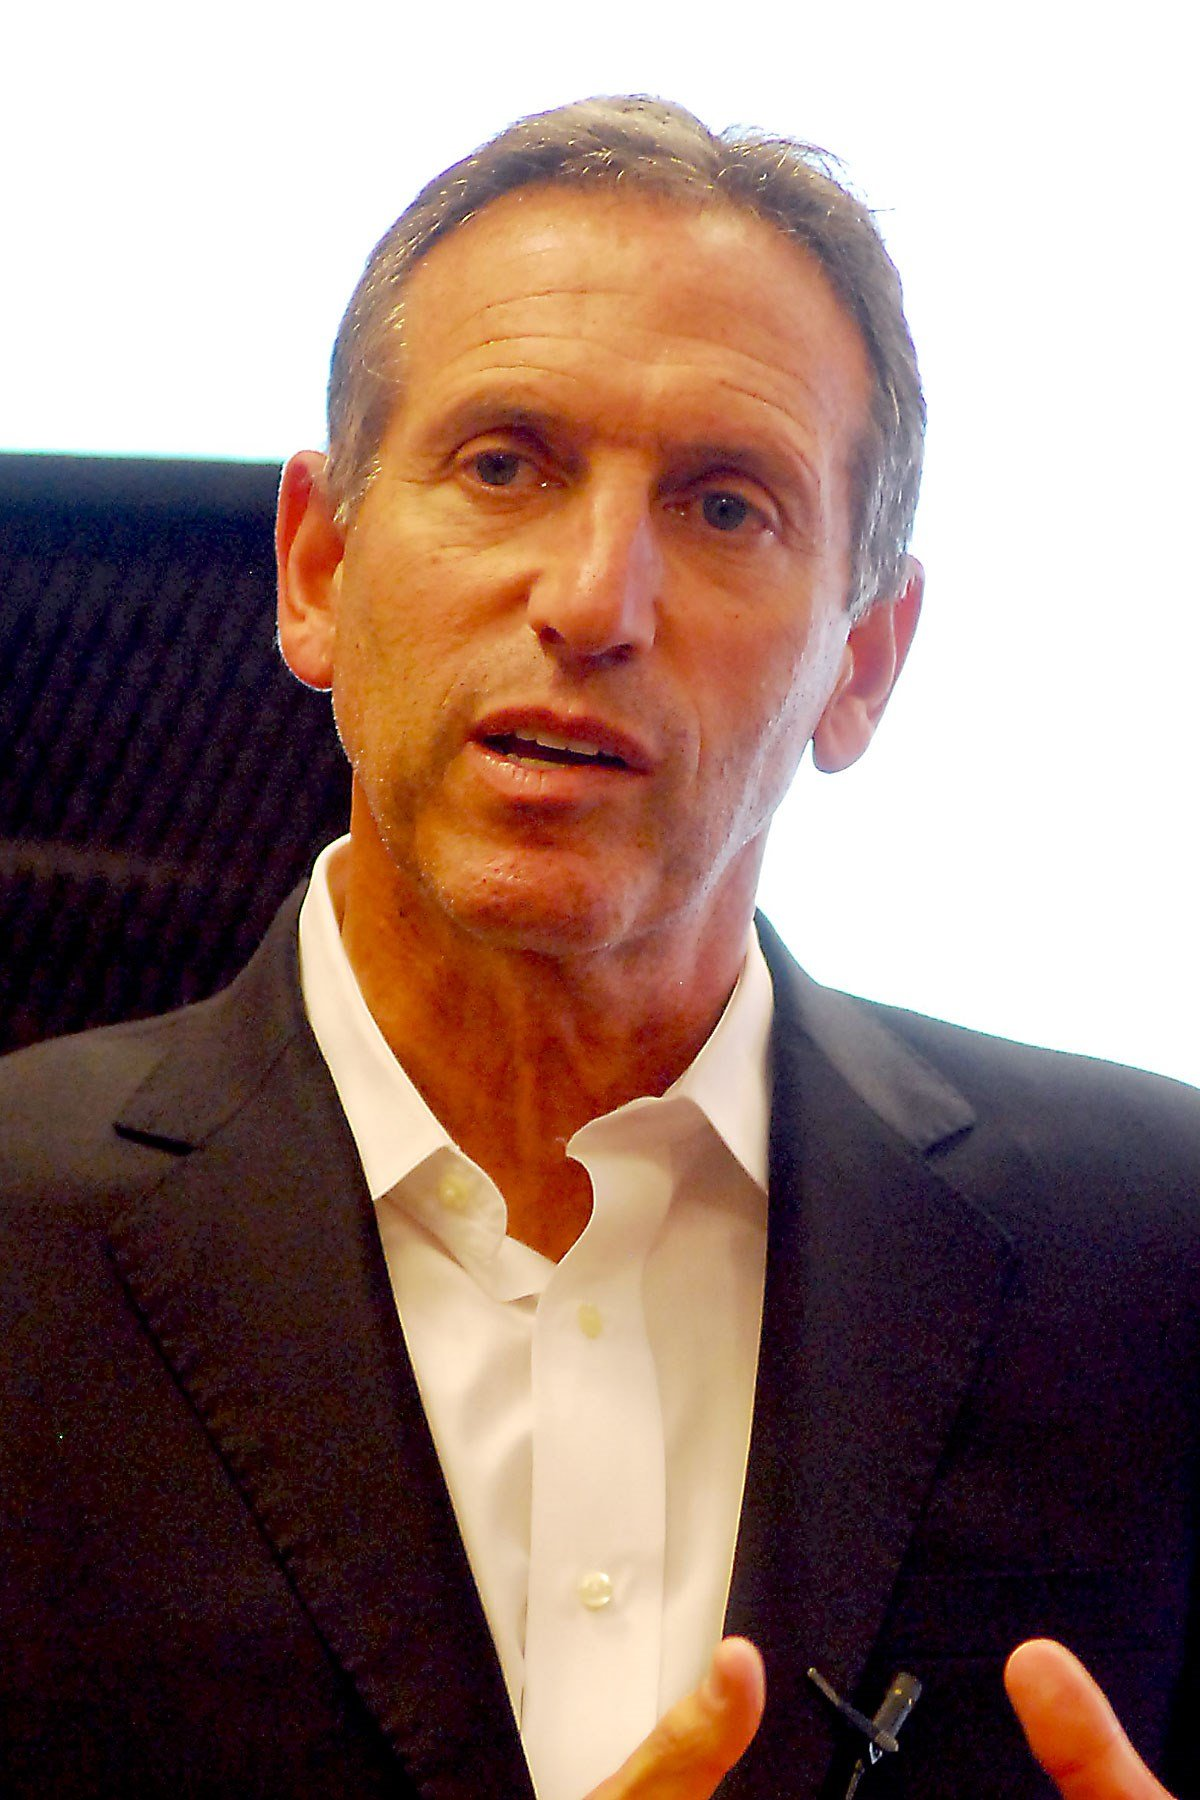 Howard Schultz in 2011. (Source: wikipedia.org/Adam Bielawsk)